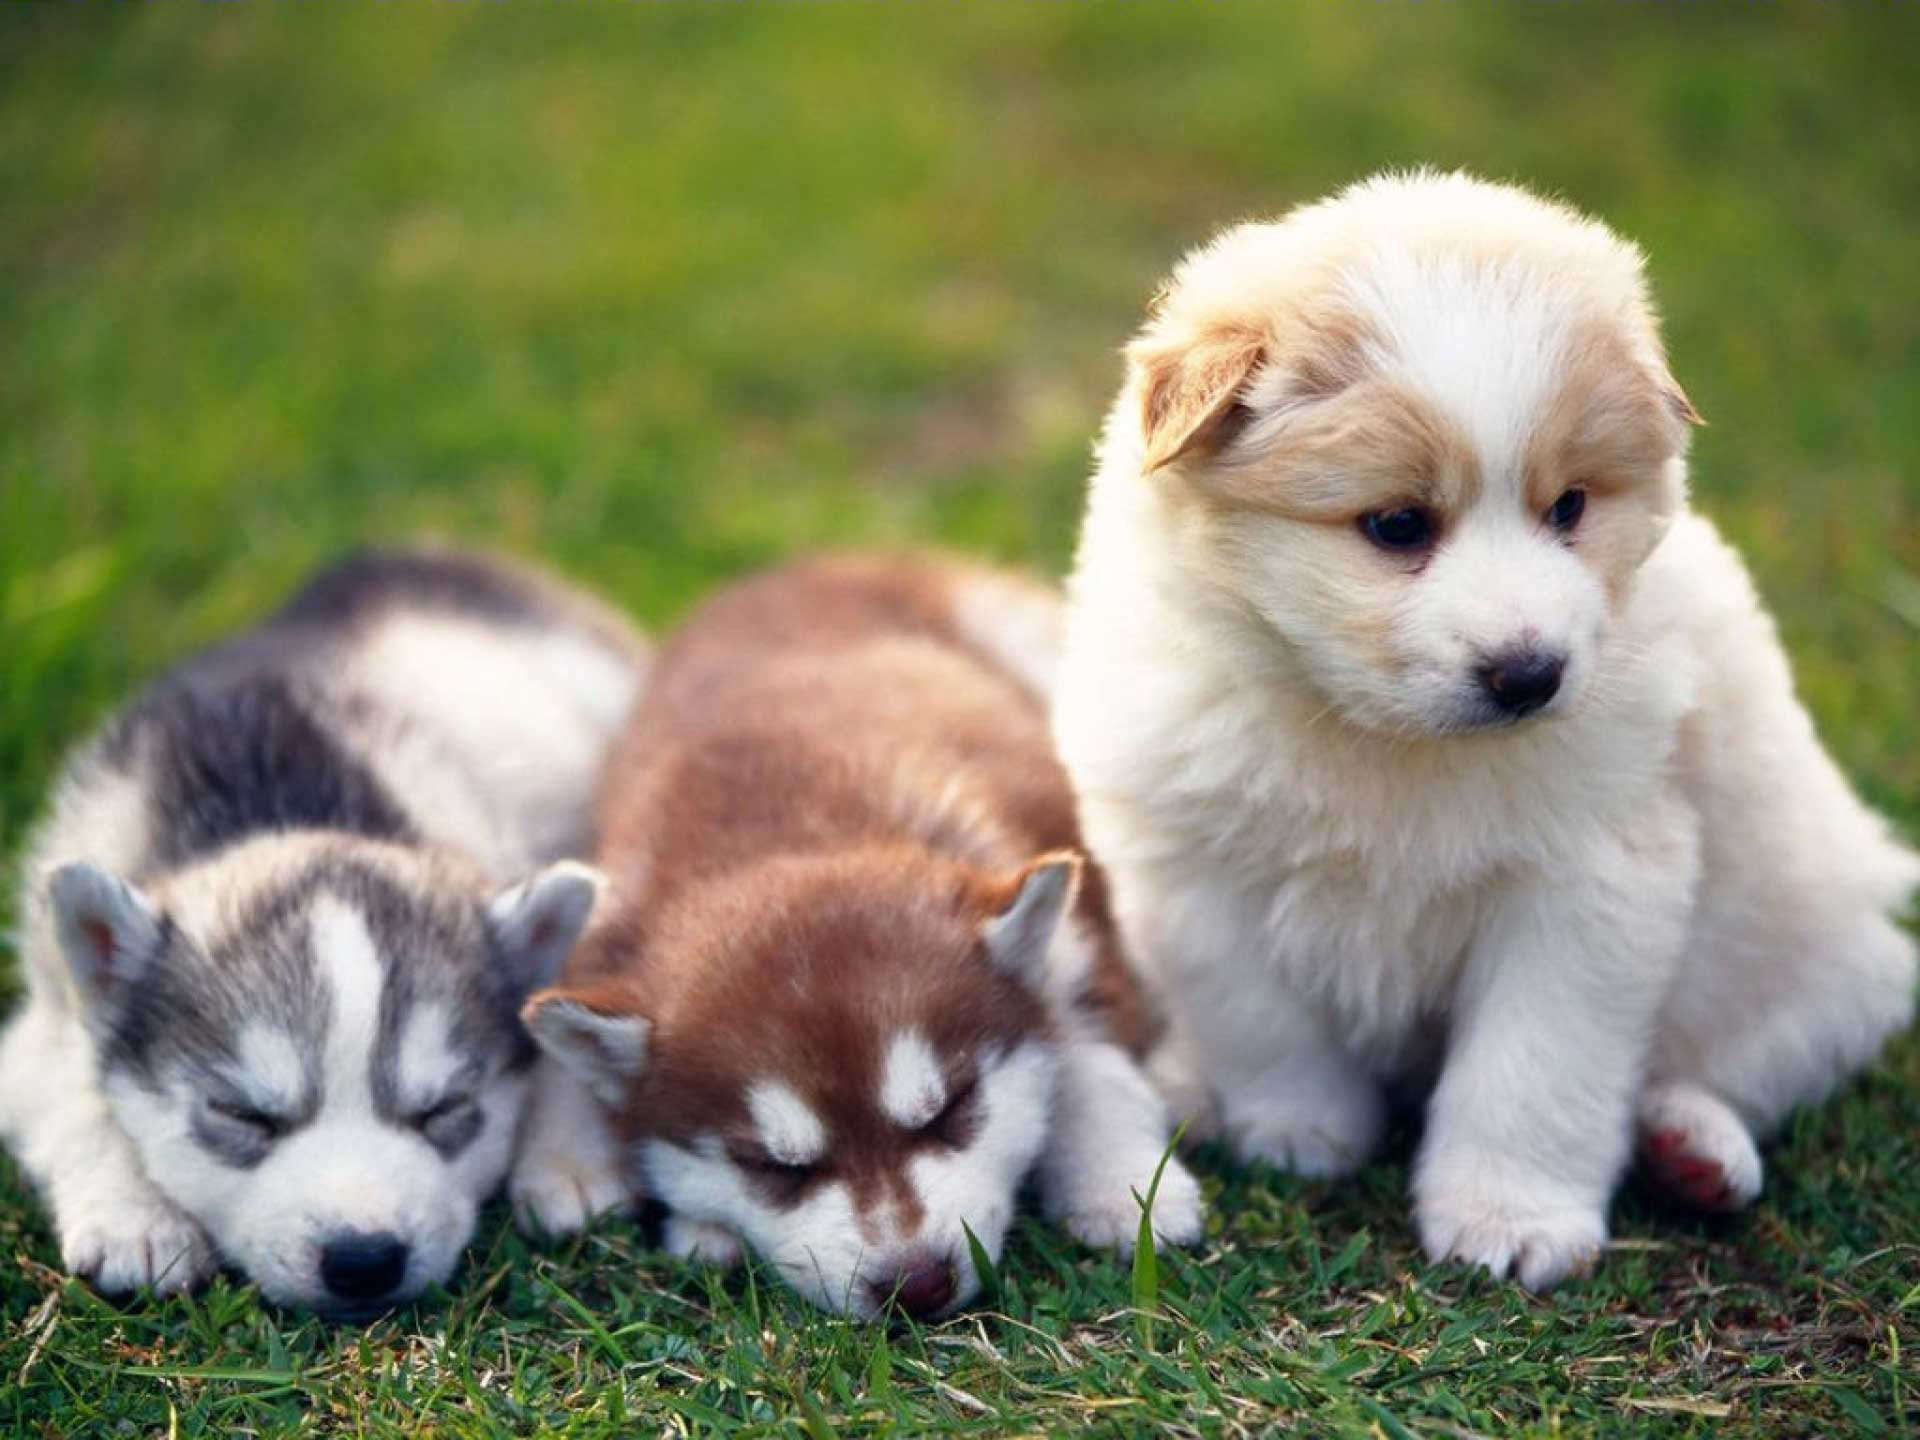 Do you know your dog breeds? Alaskan Malamute